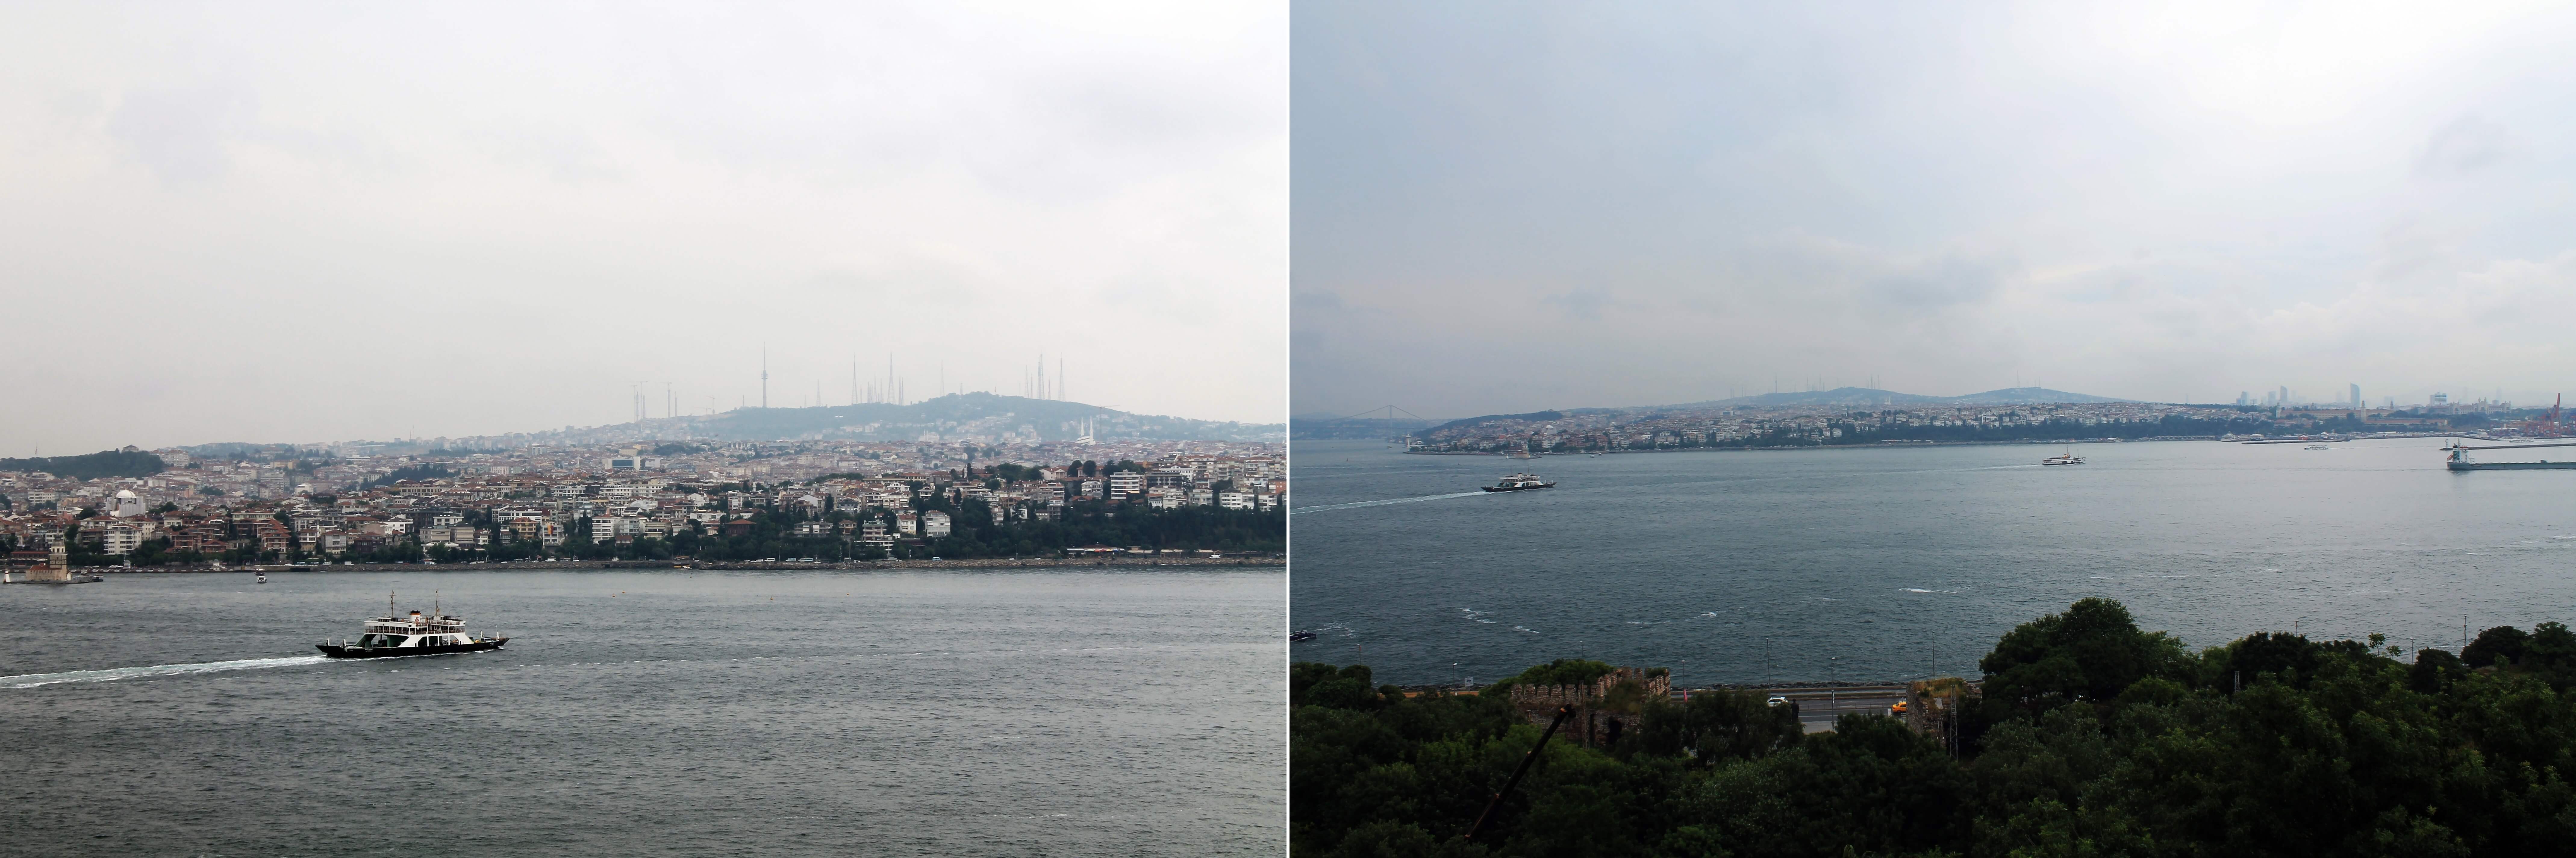 The Bosphorus_view from The Circumcision Chamber_Topkapi 4th Courtyard (2)-horz